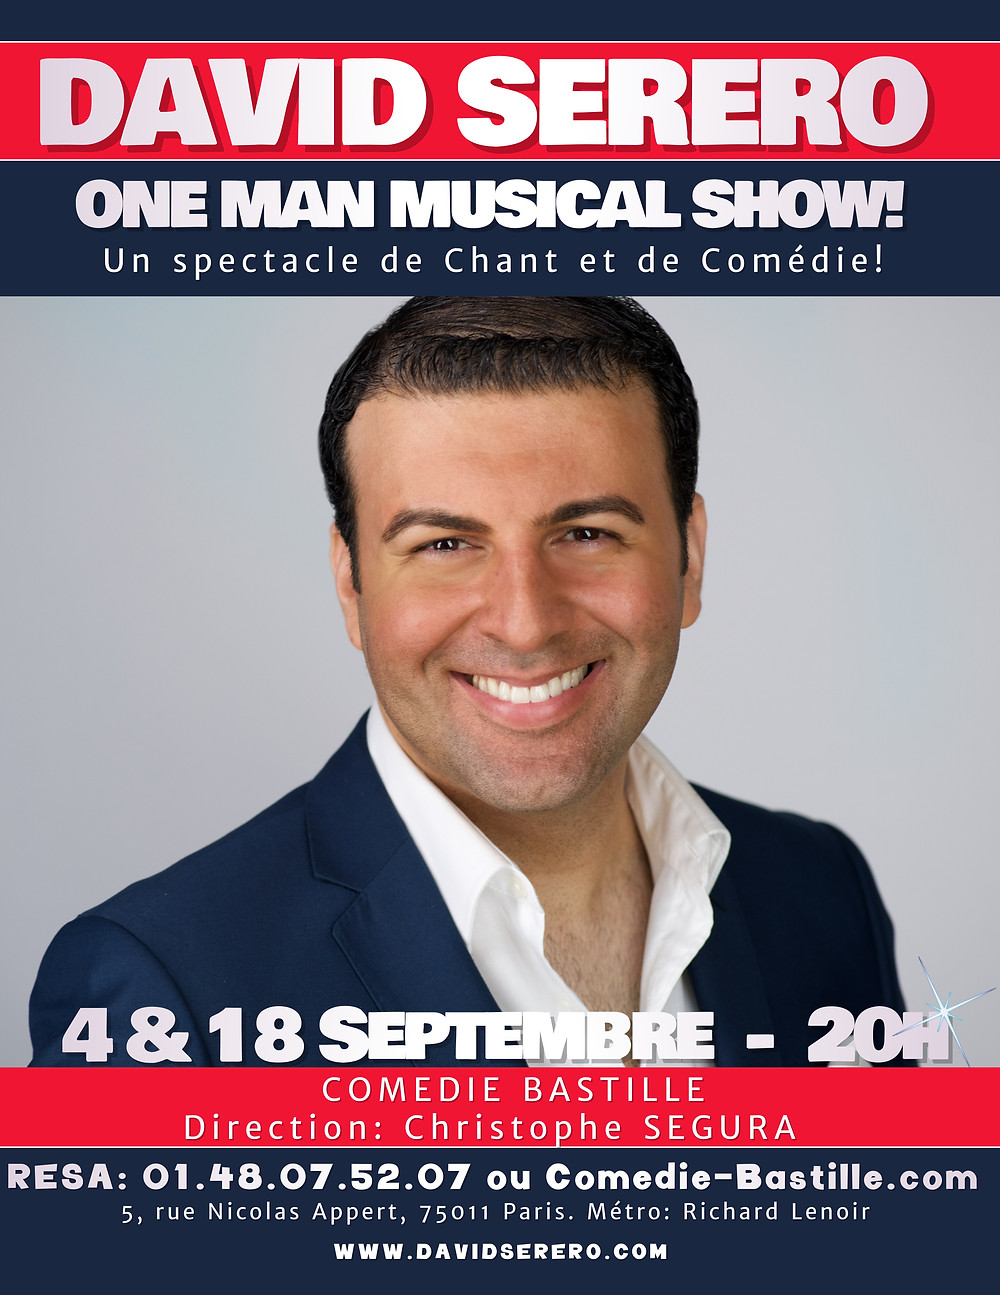 David Serero One Man Musical Show - Comedie Bastille à Paris